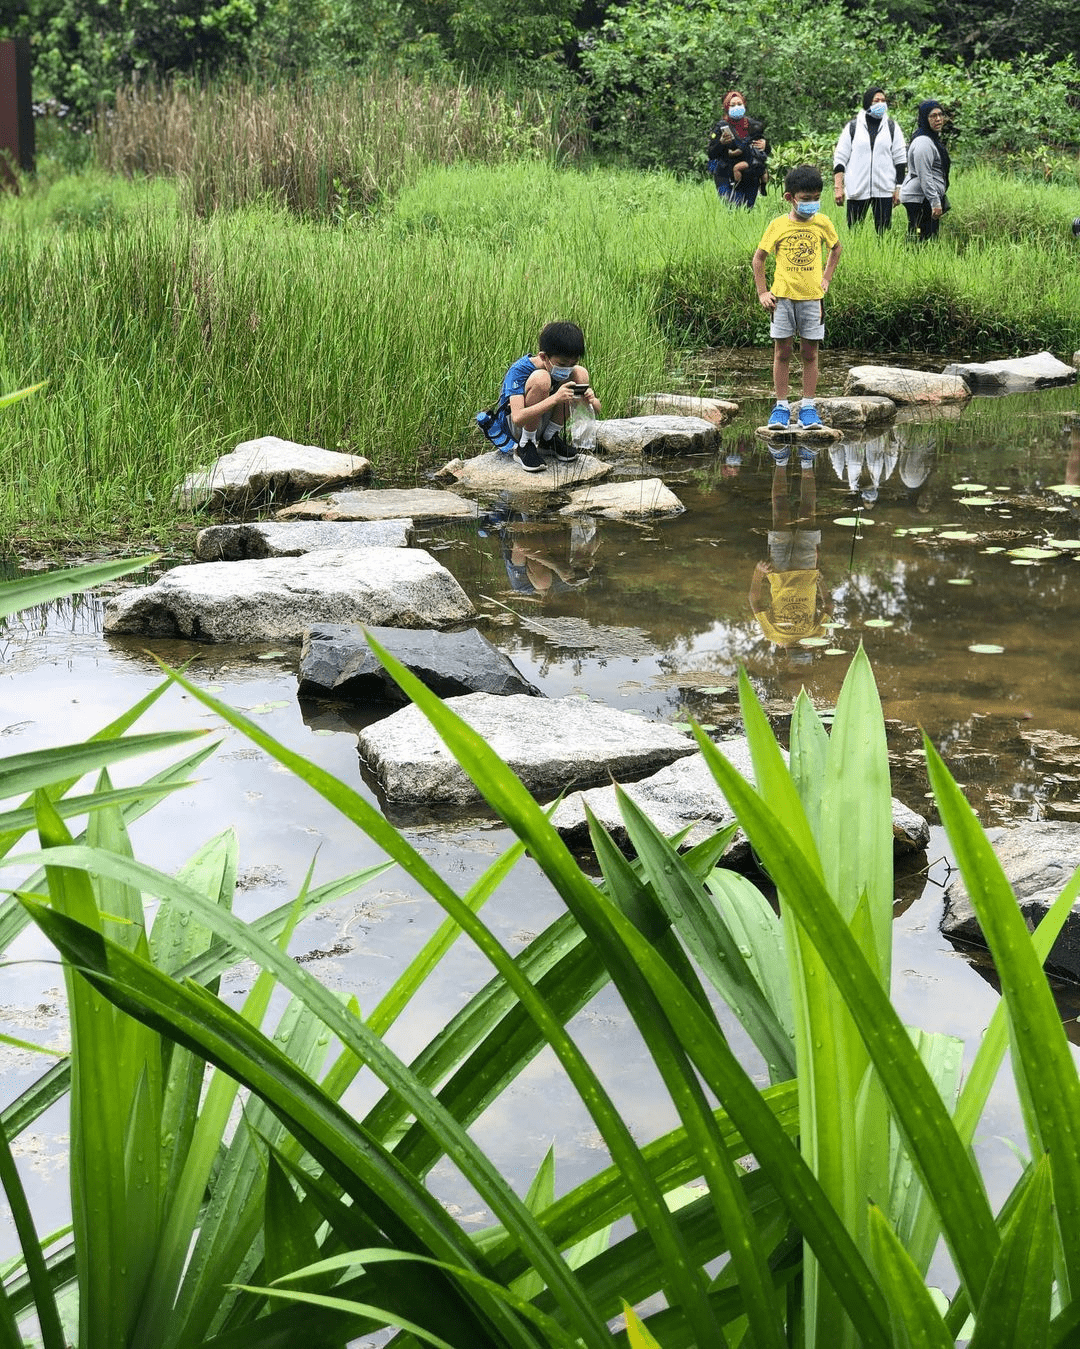 Image of boys inspecting a pond